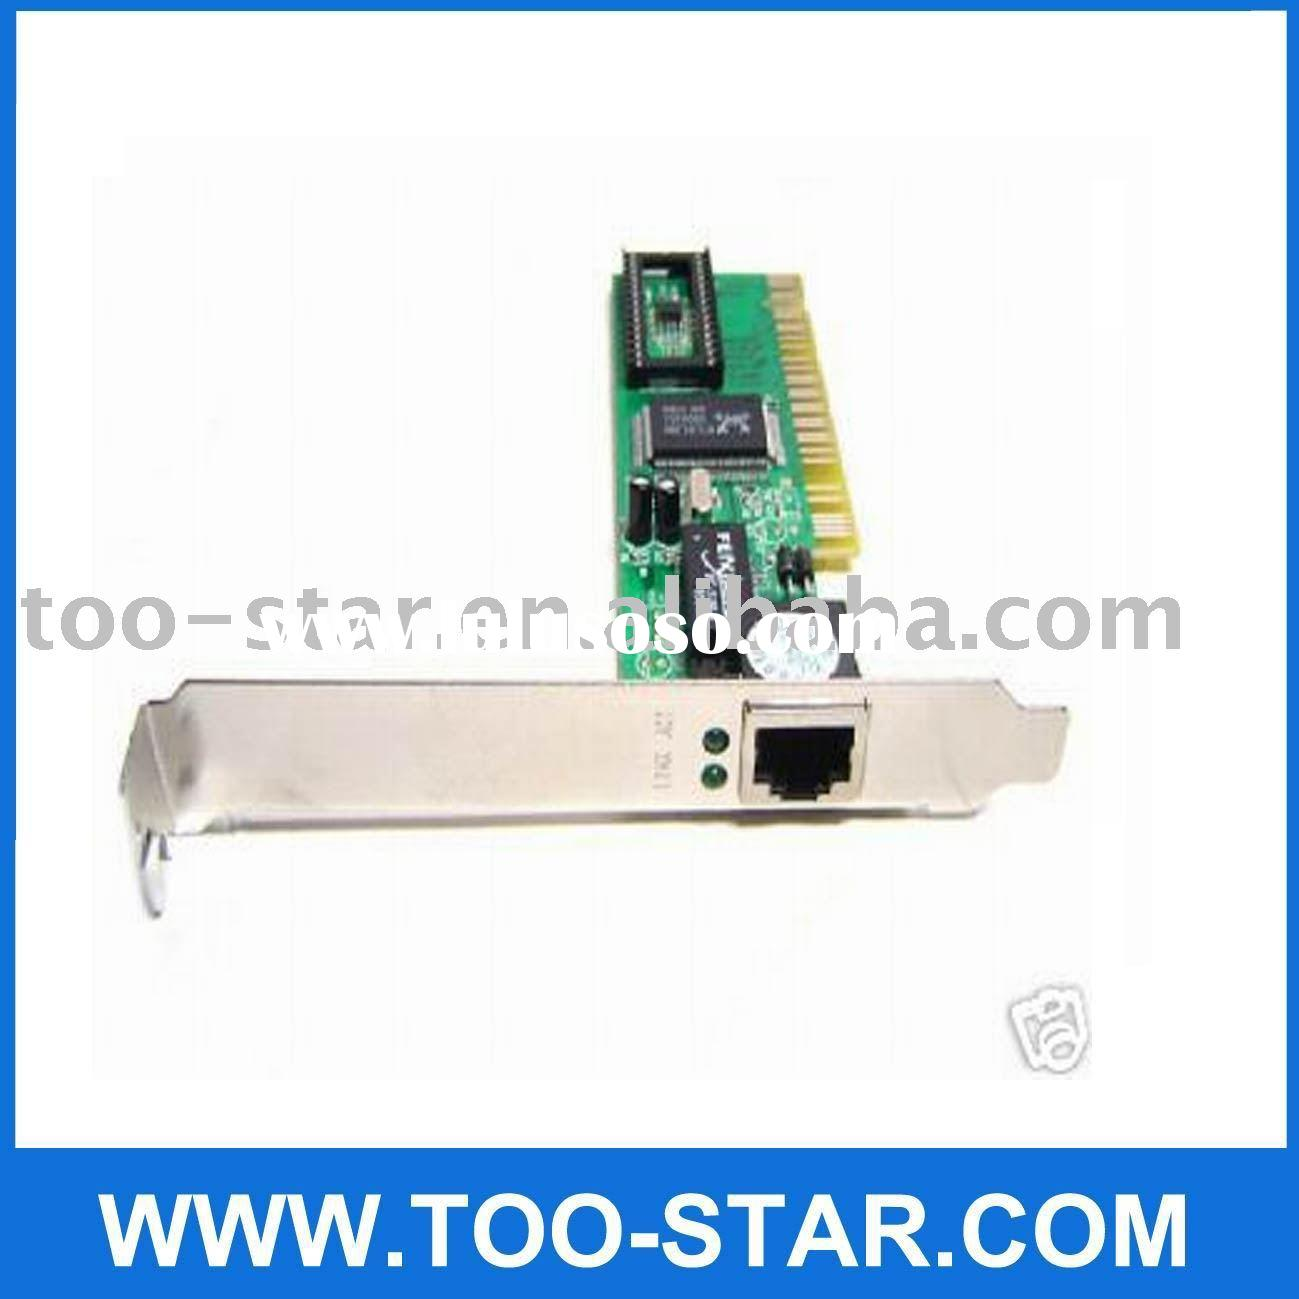 WIRE LAN,New Realtek 10/100 PCI Ethernet/Network Card NIC/LAN